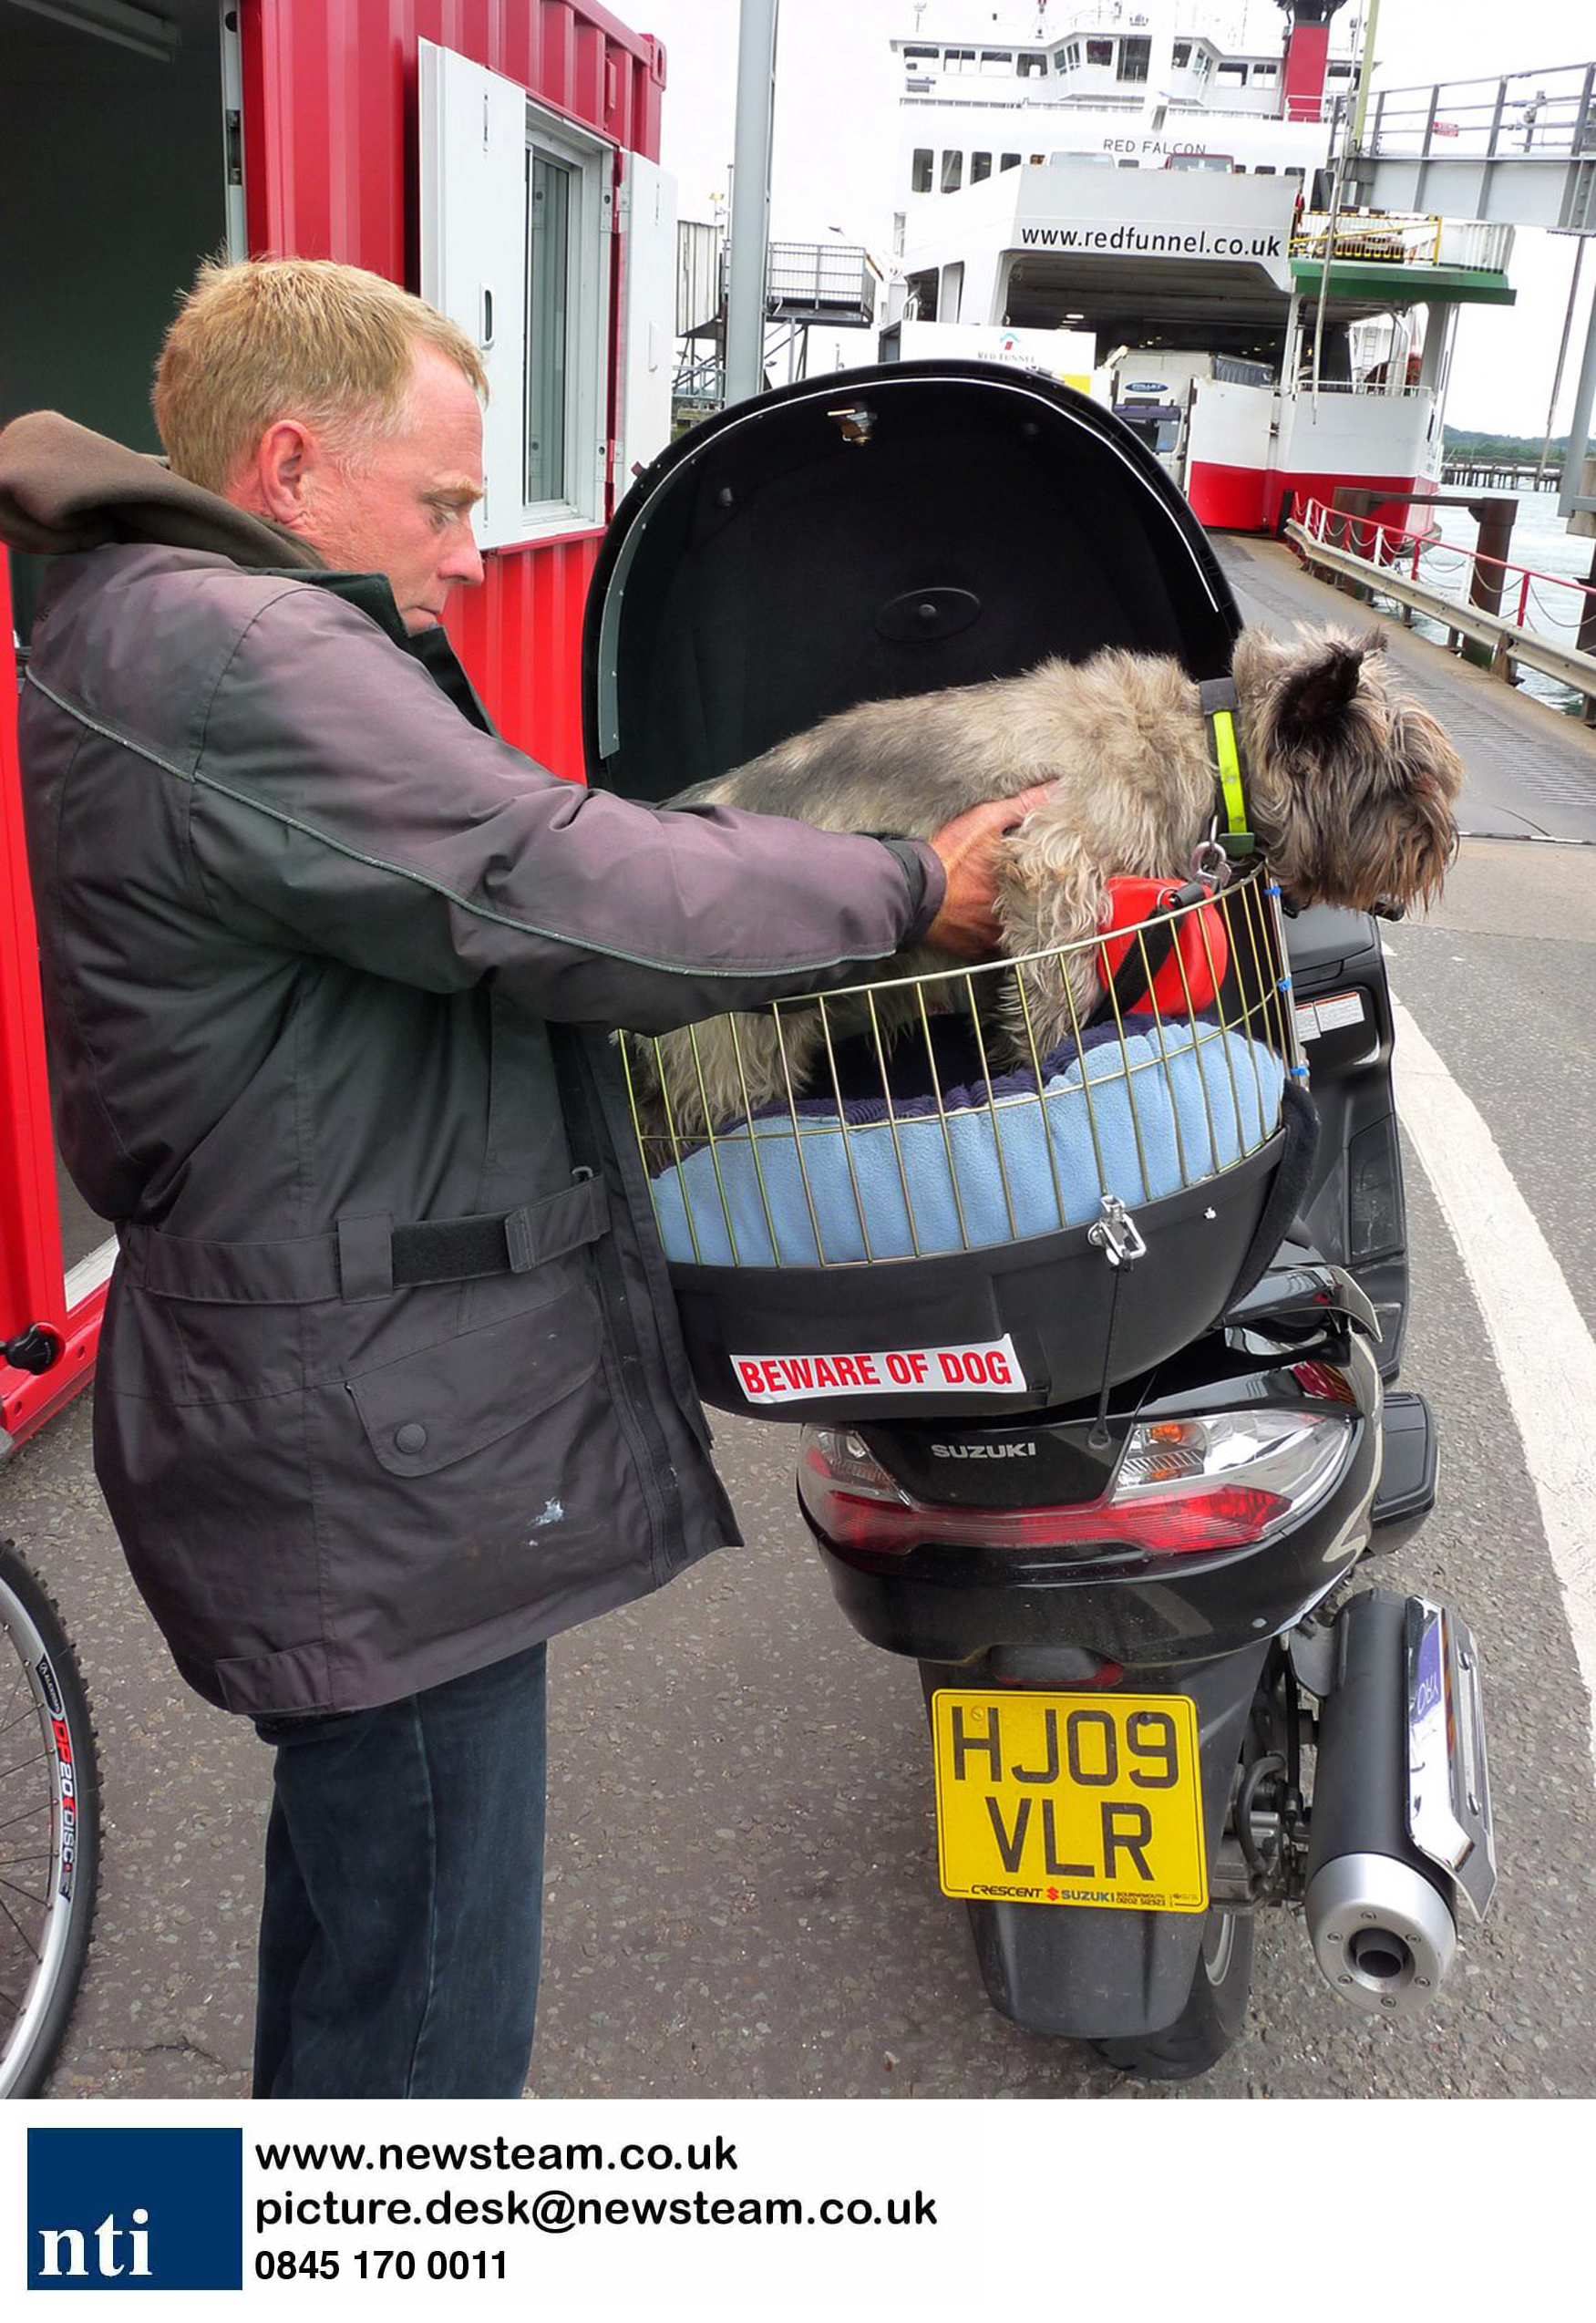 Motorbike dog box inventor